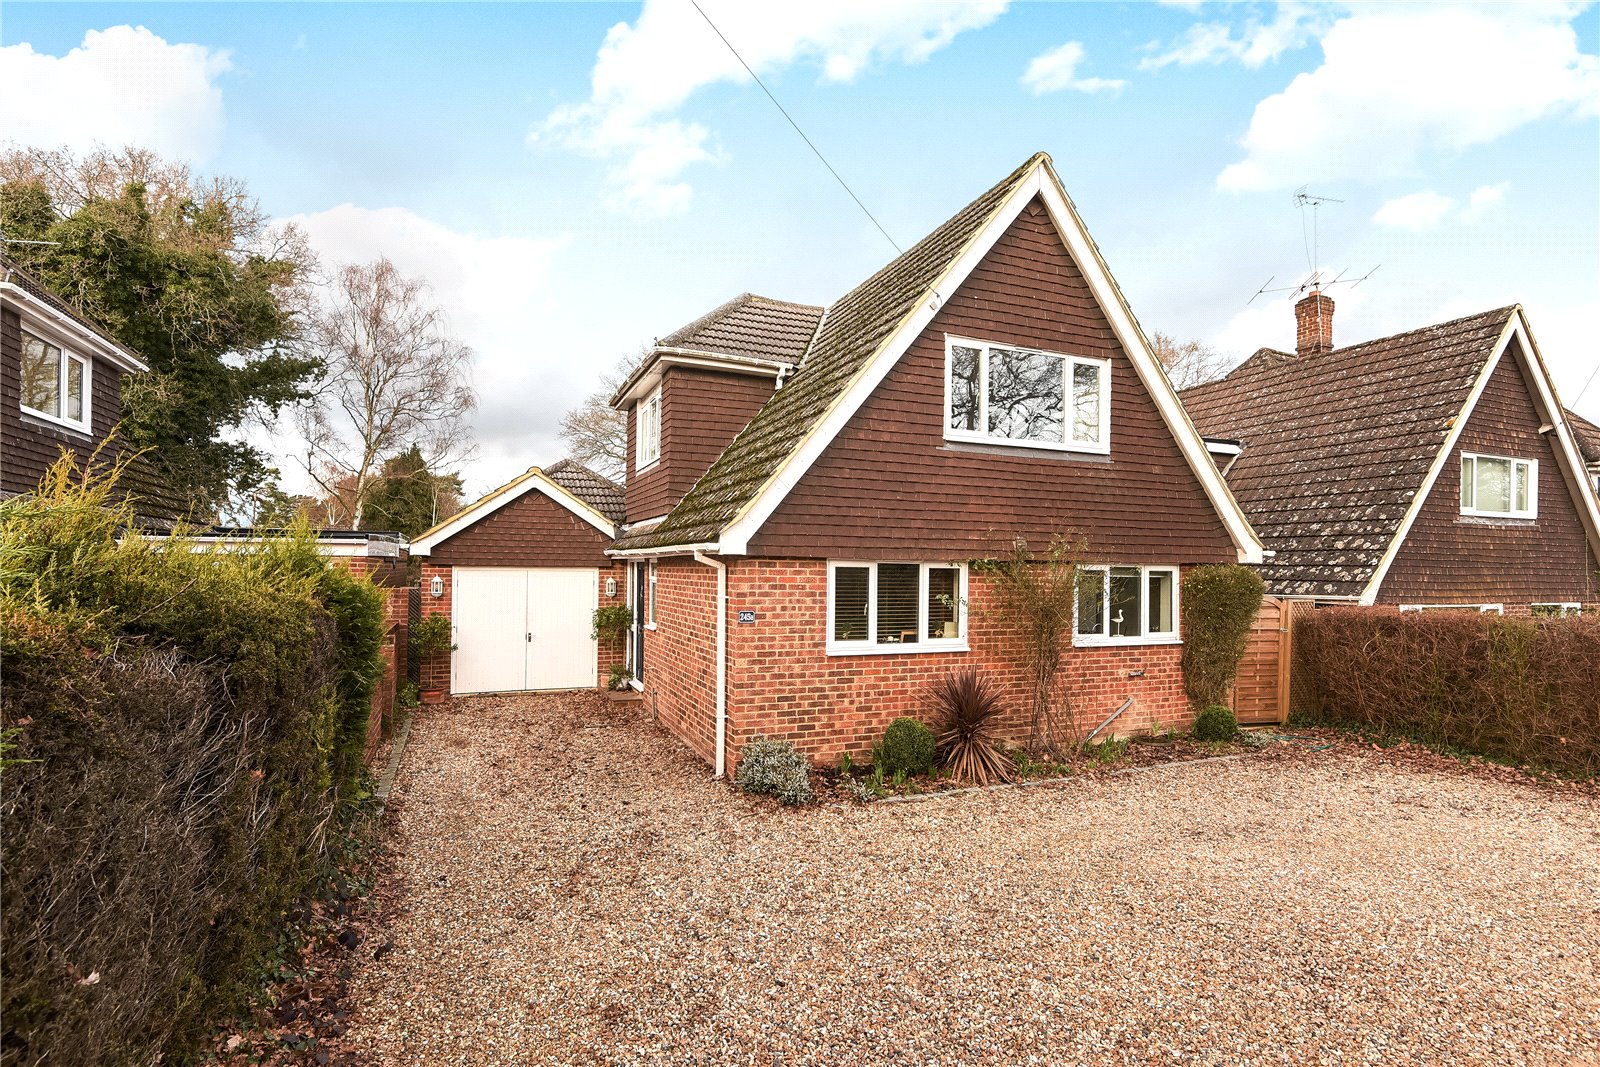 4 Bedrooms Detached House for sale in Nine Mile Ride, Finchampstead, Wokingham, Berkshire, RG40